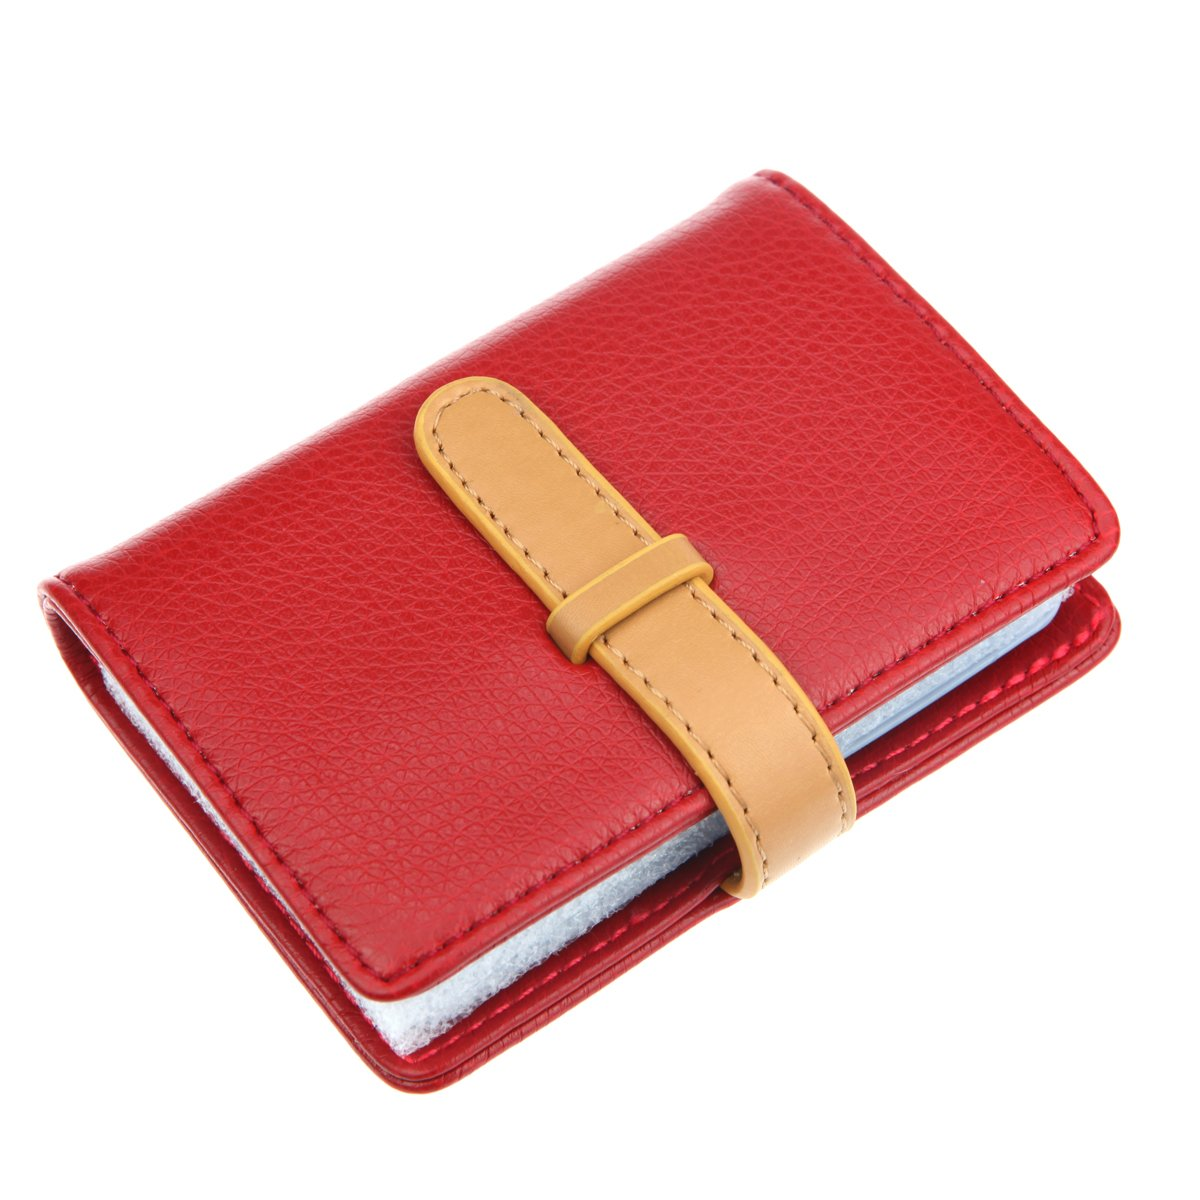 DEEZOMO PU Leather Credit Card Holder with 26 Card Slots CC15052M